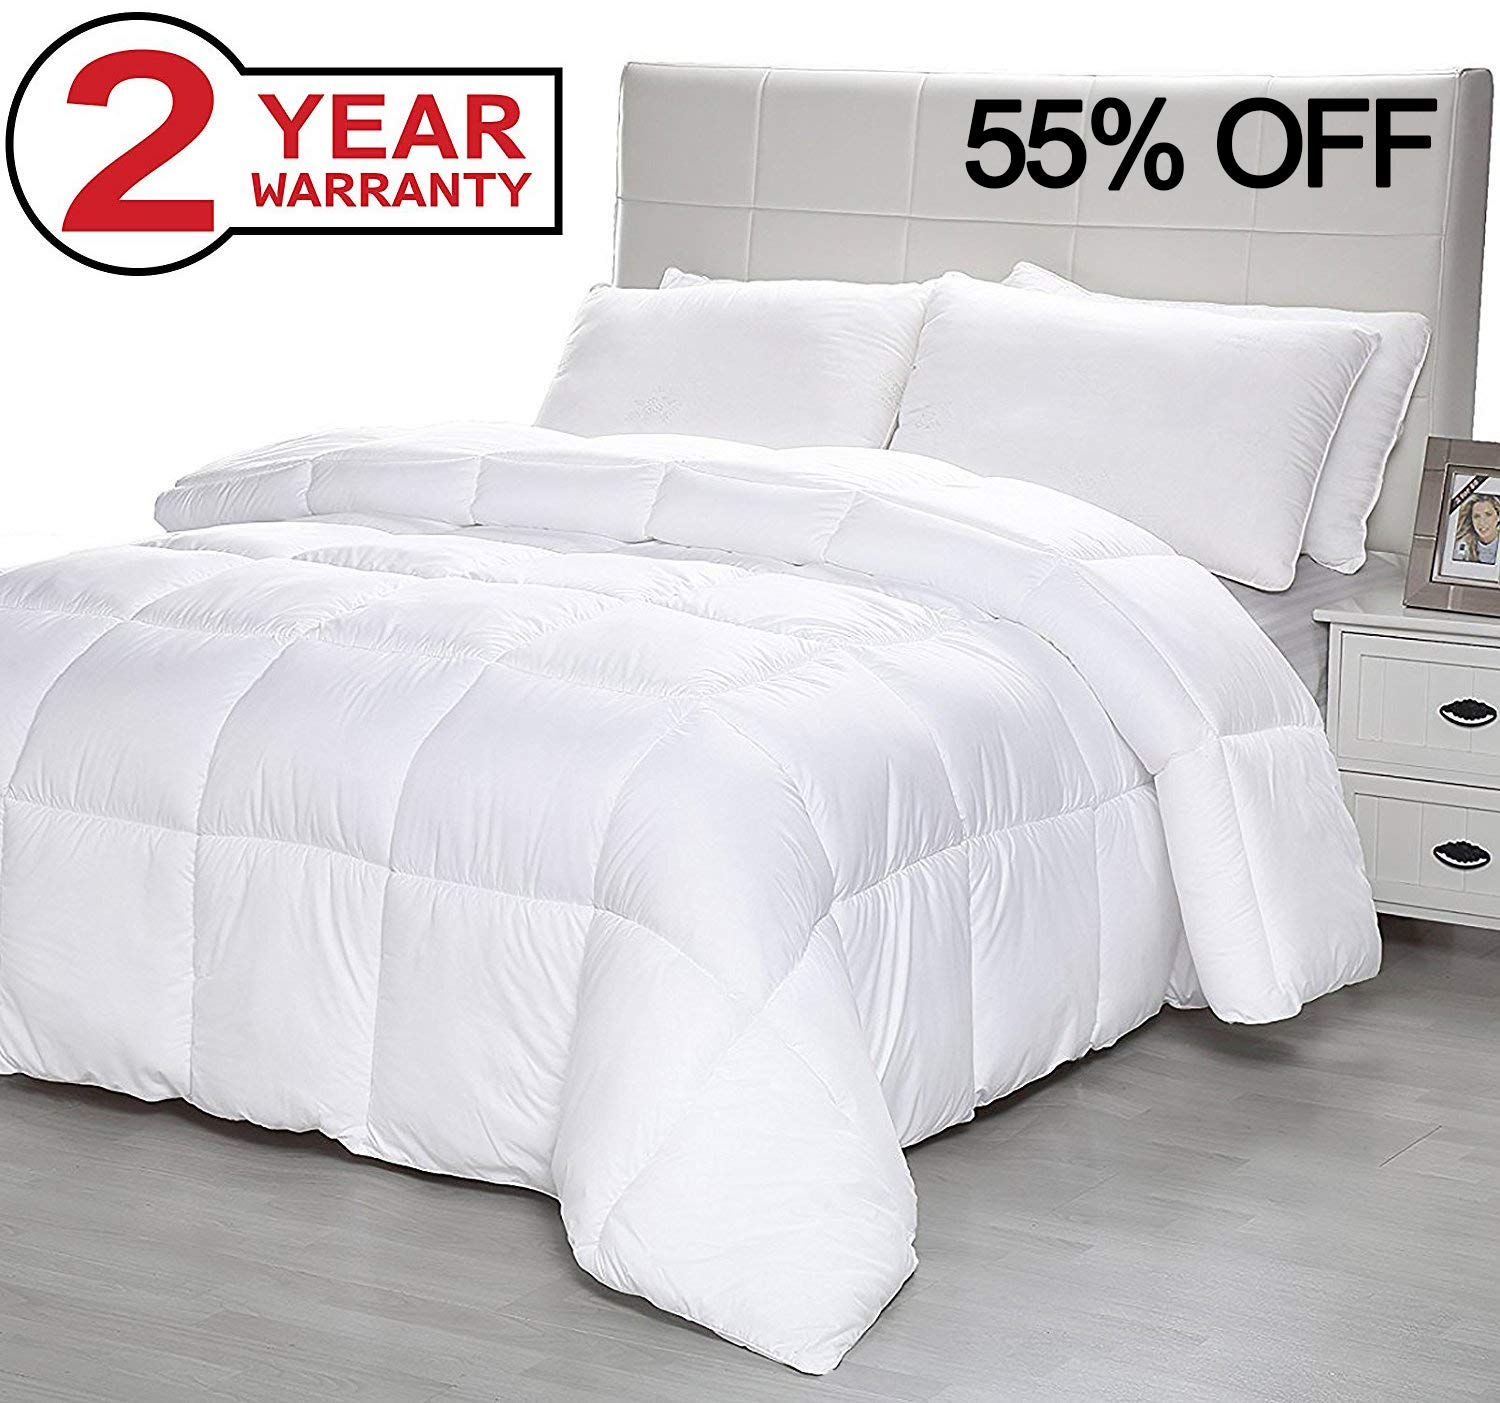 Down Alternative Comforter Duvet Plush Microfiber Fill Duvet Insert, Lightweight for All Season, Premium Hotel Quality - Machine Washable by The Duck and Goose Co - King Lekeez BED-QT-86x102